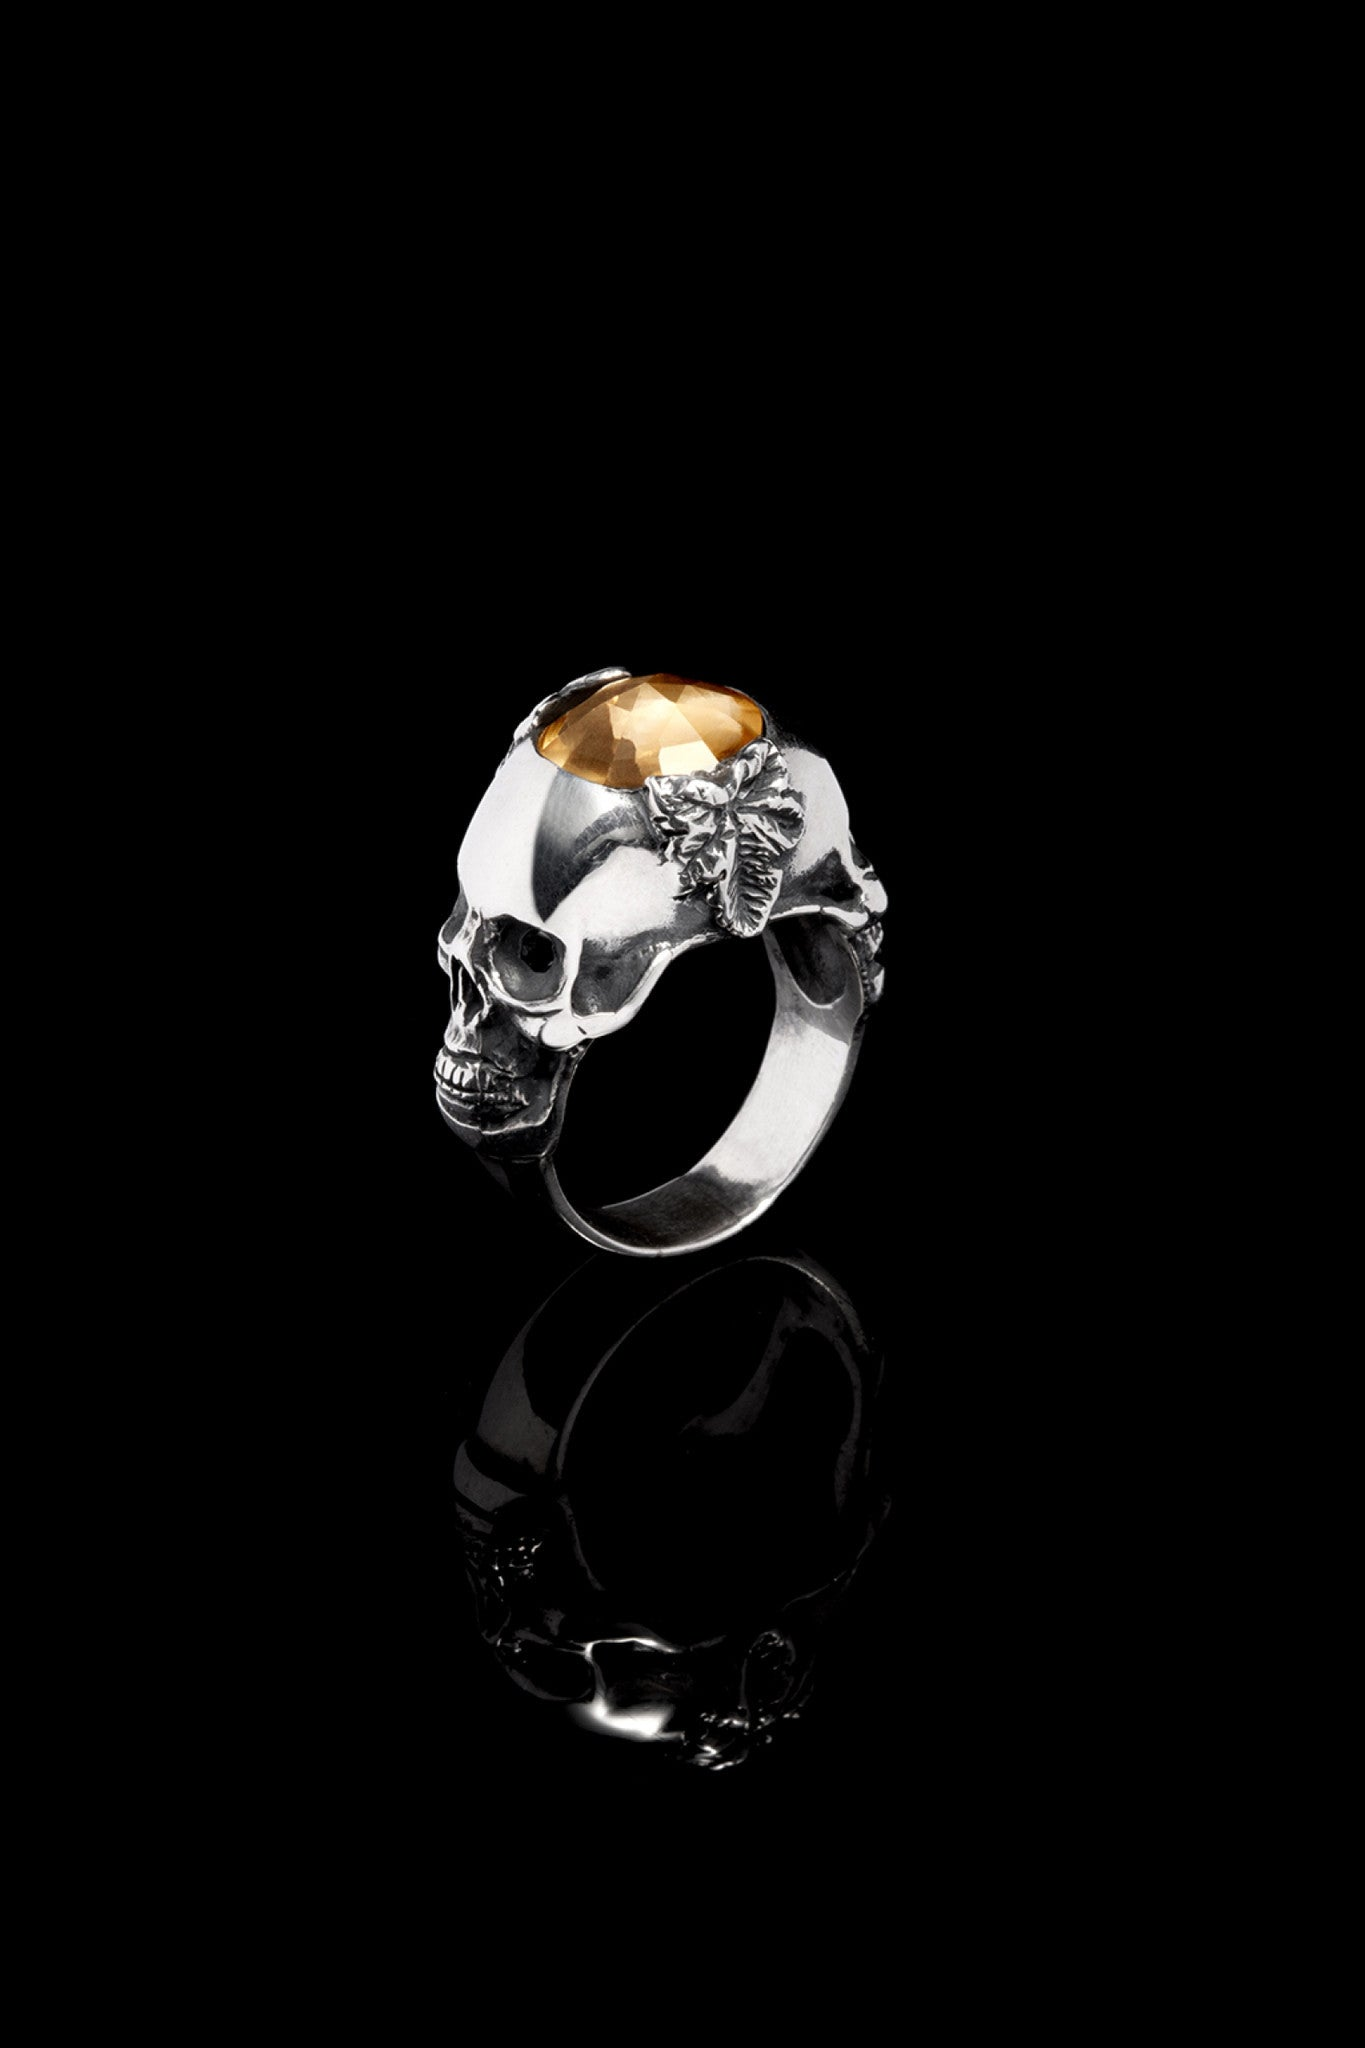 Ugo Cacciatori, Silver, Jewelry, Sterling Silver, Ring, Citrine, Citrine and Black Diamonds, Citrine and Brown Diamonds, Citrine and Emeralds, Citrine and Rubies, Citrine and Sapphires